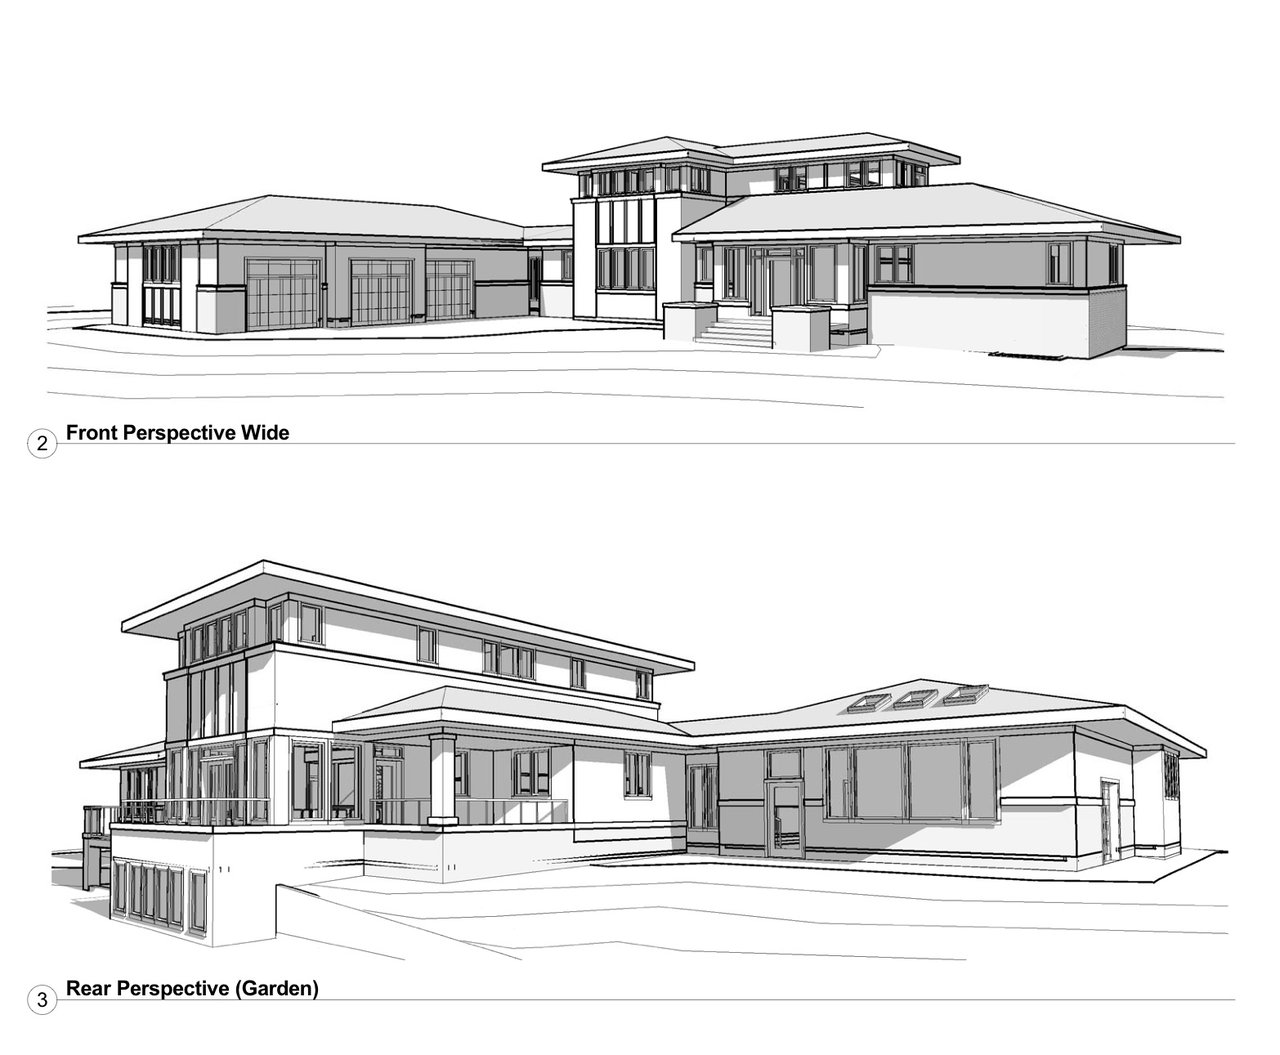 A Prairie Style inspired project currently submitted to architectural controls.